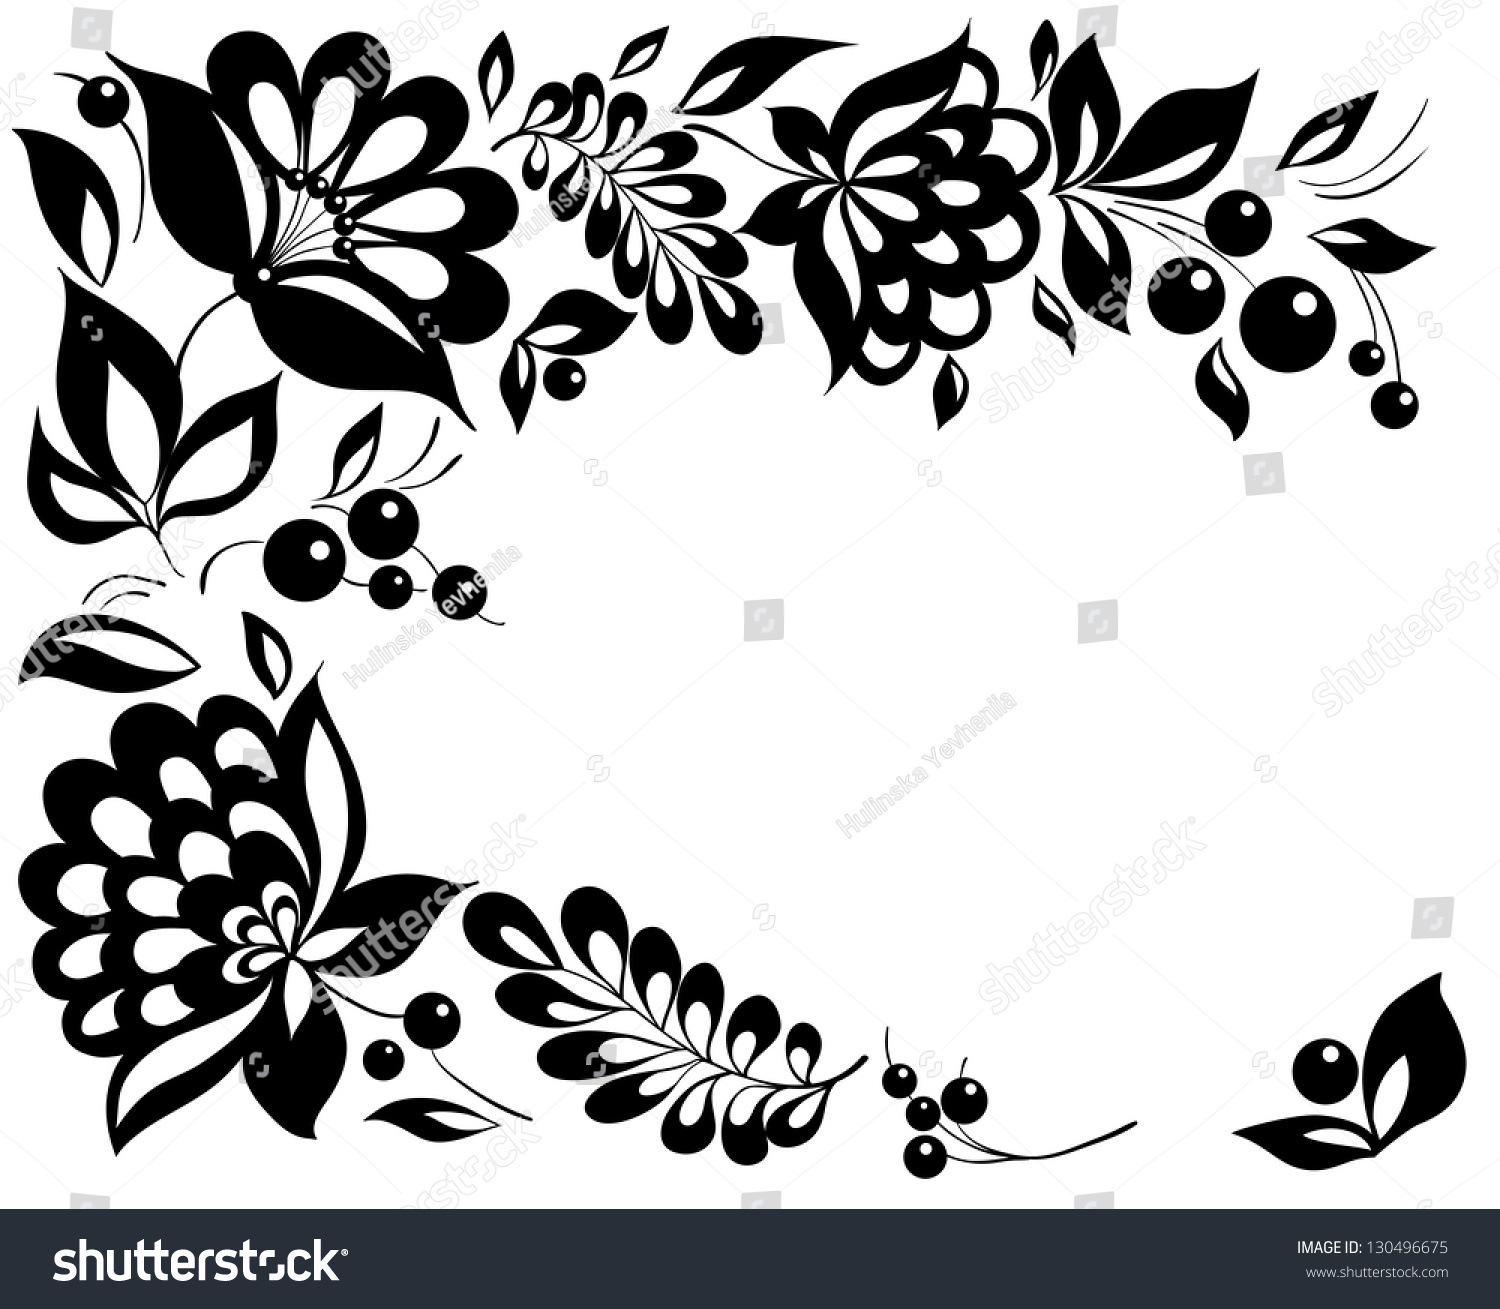 Blackandwhite flowers leaves floral design element stock for Copy design